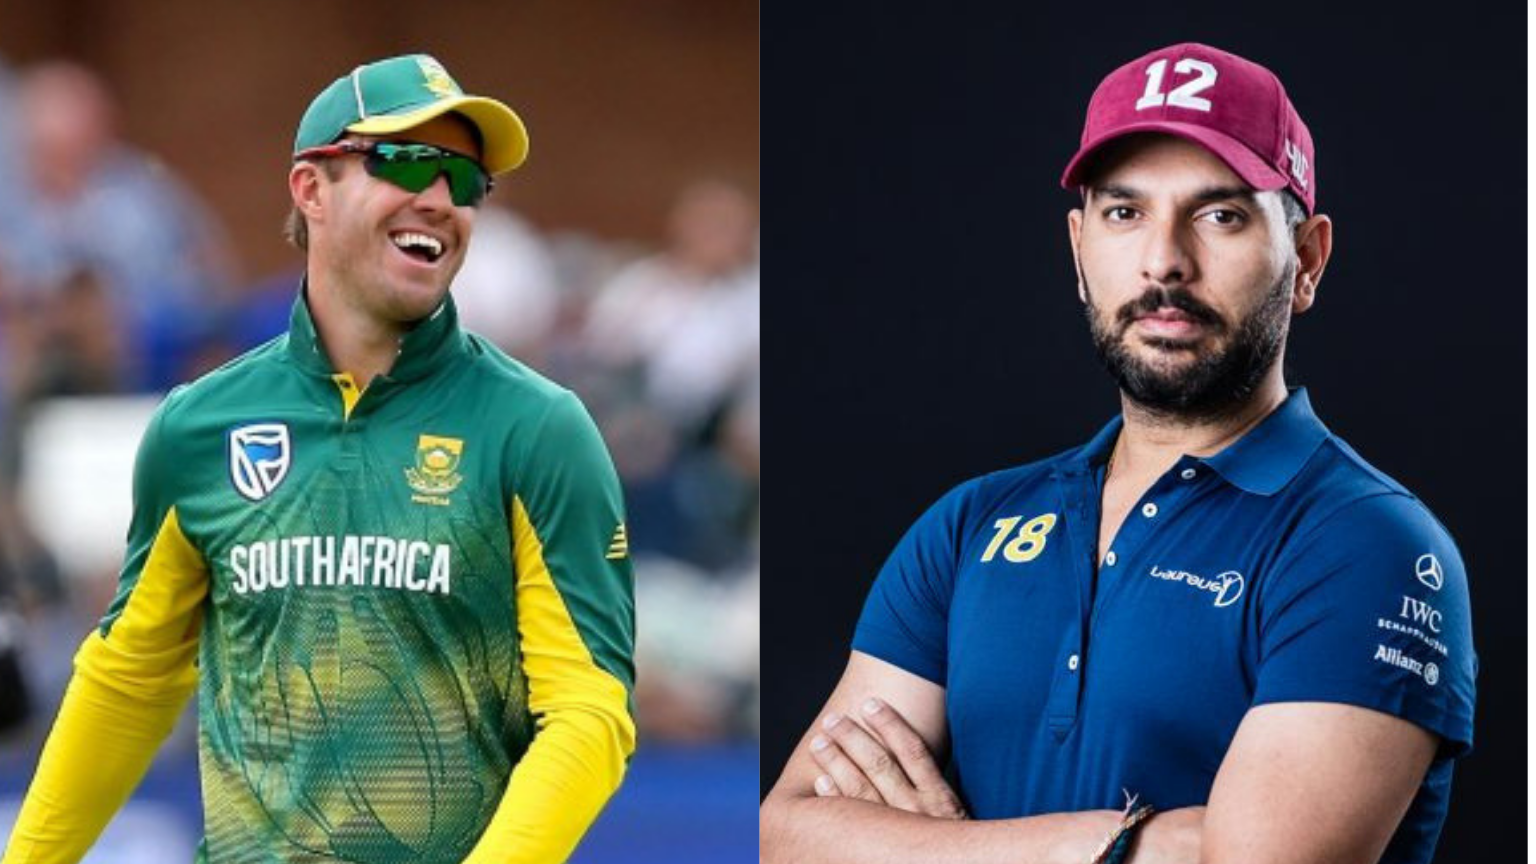 SA Didn't Have Chance to Win World Cup Without You: Yuvraj to ABD